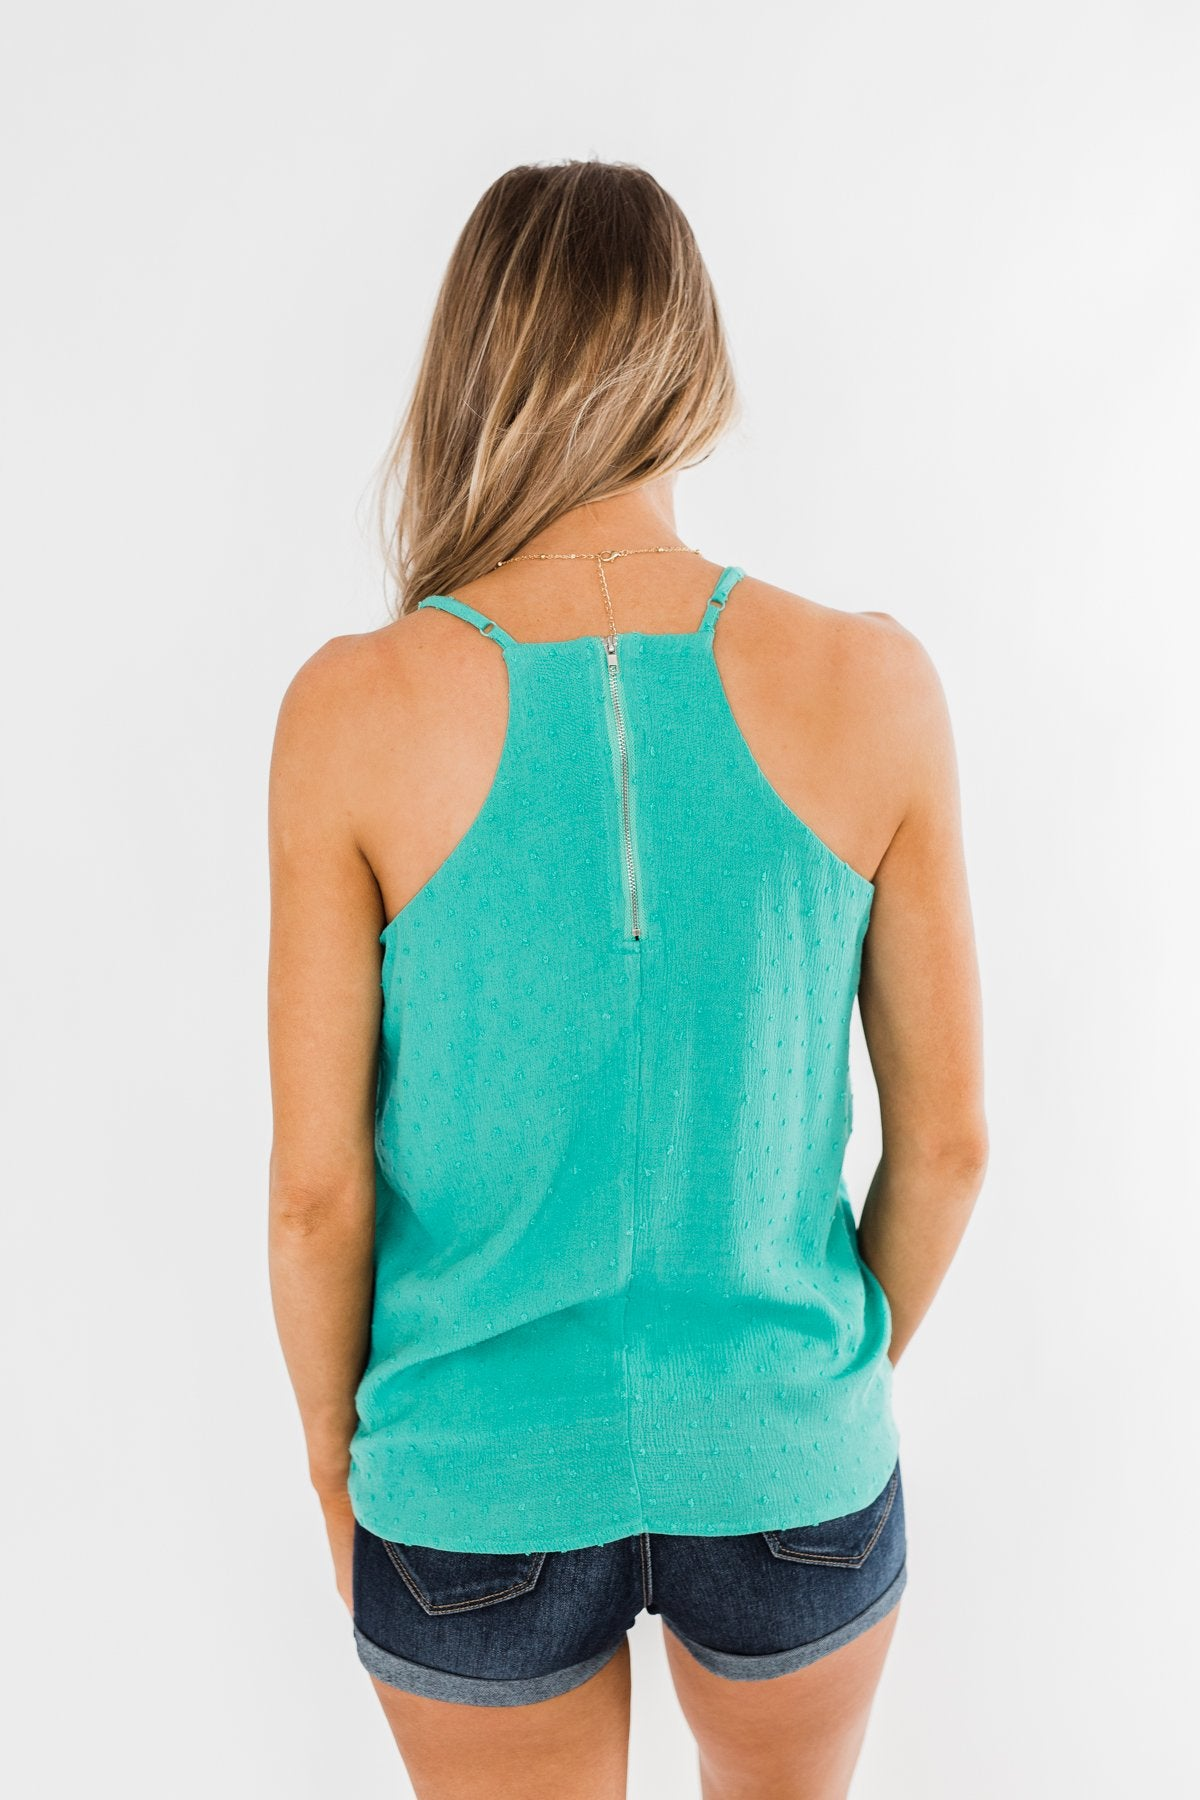 Make You Notice Me Racerback Tank Top- Deep Teal